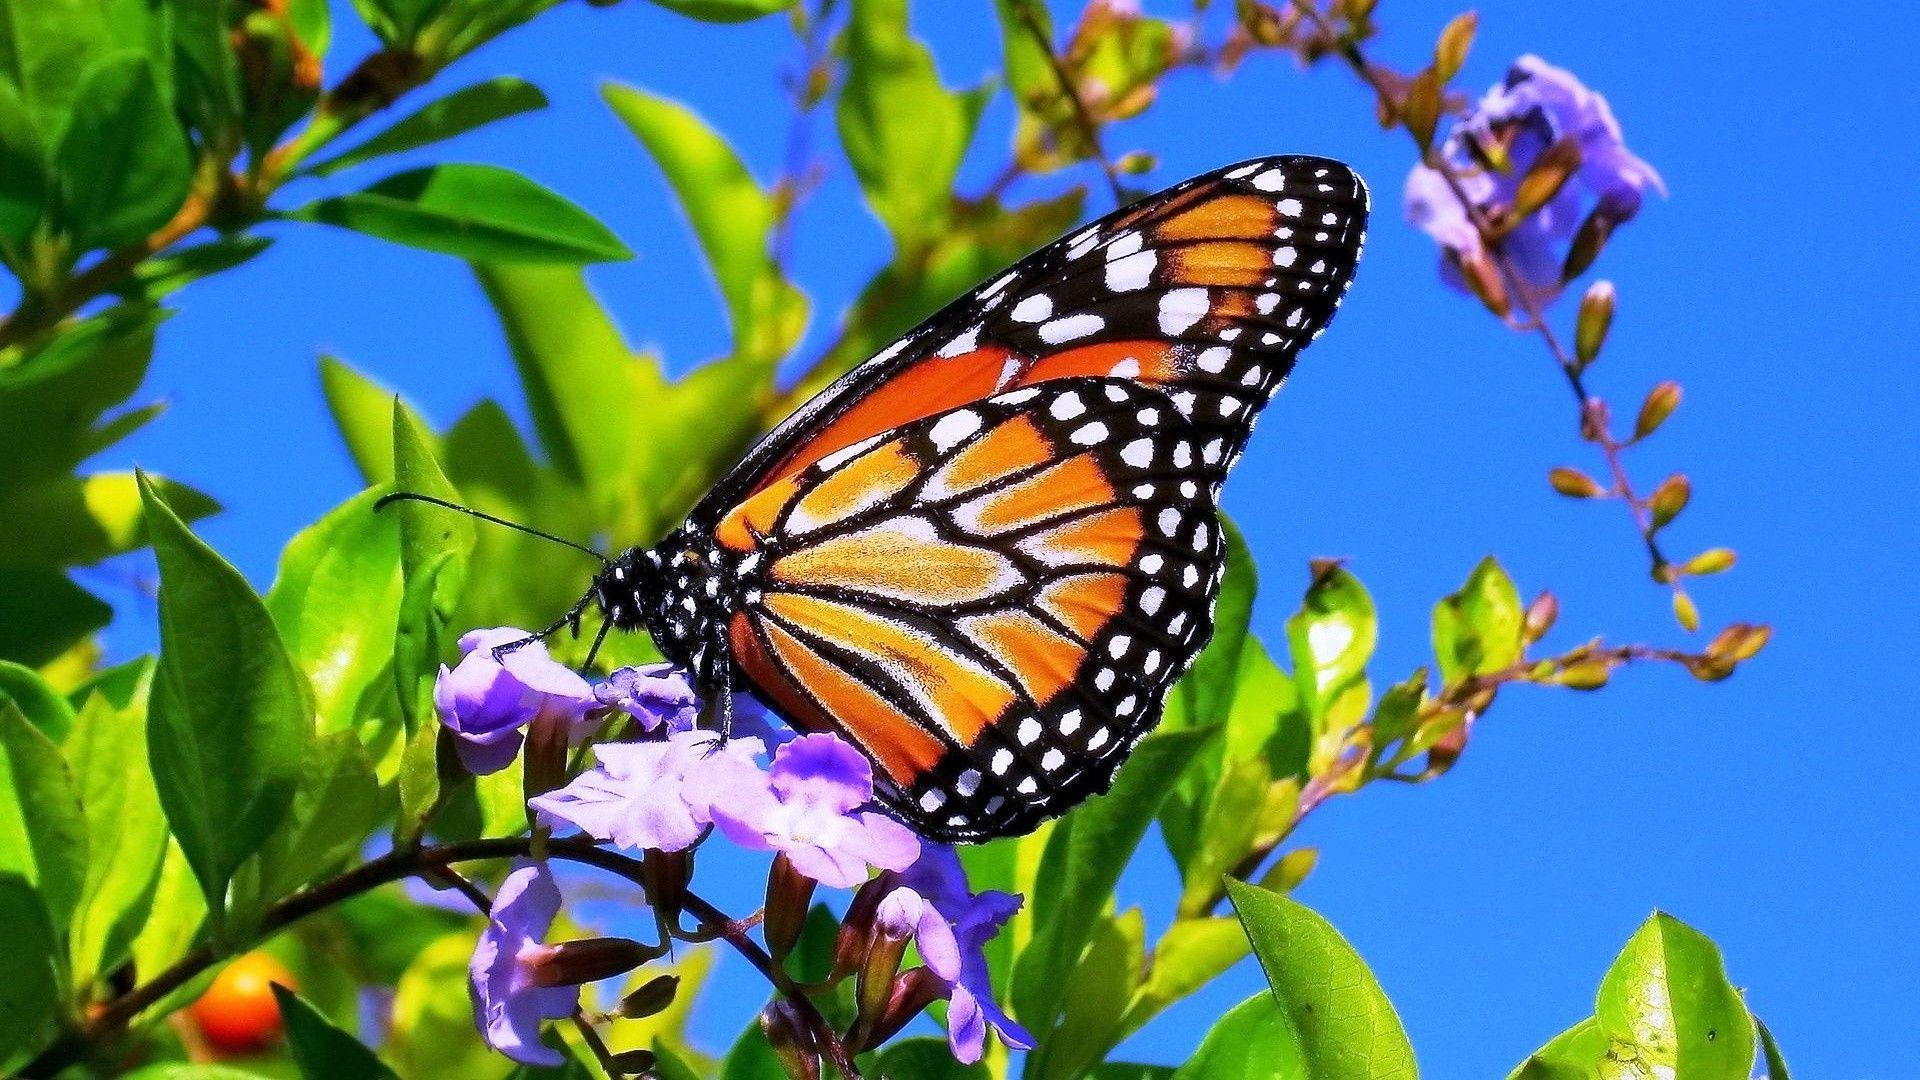 Beautiful Pictures Of Flowers And Butterflies Birds Butterfly And Flower Wallpapers Wallpaper Cave